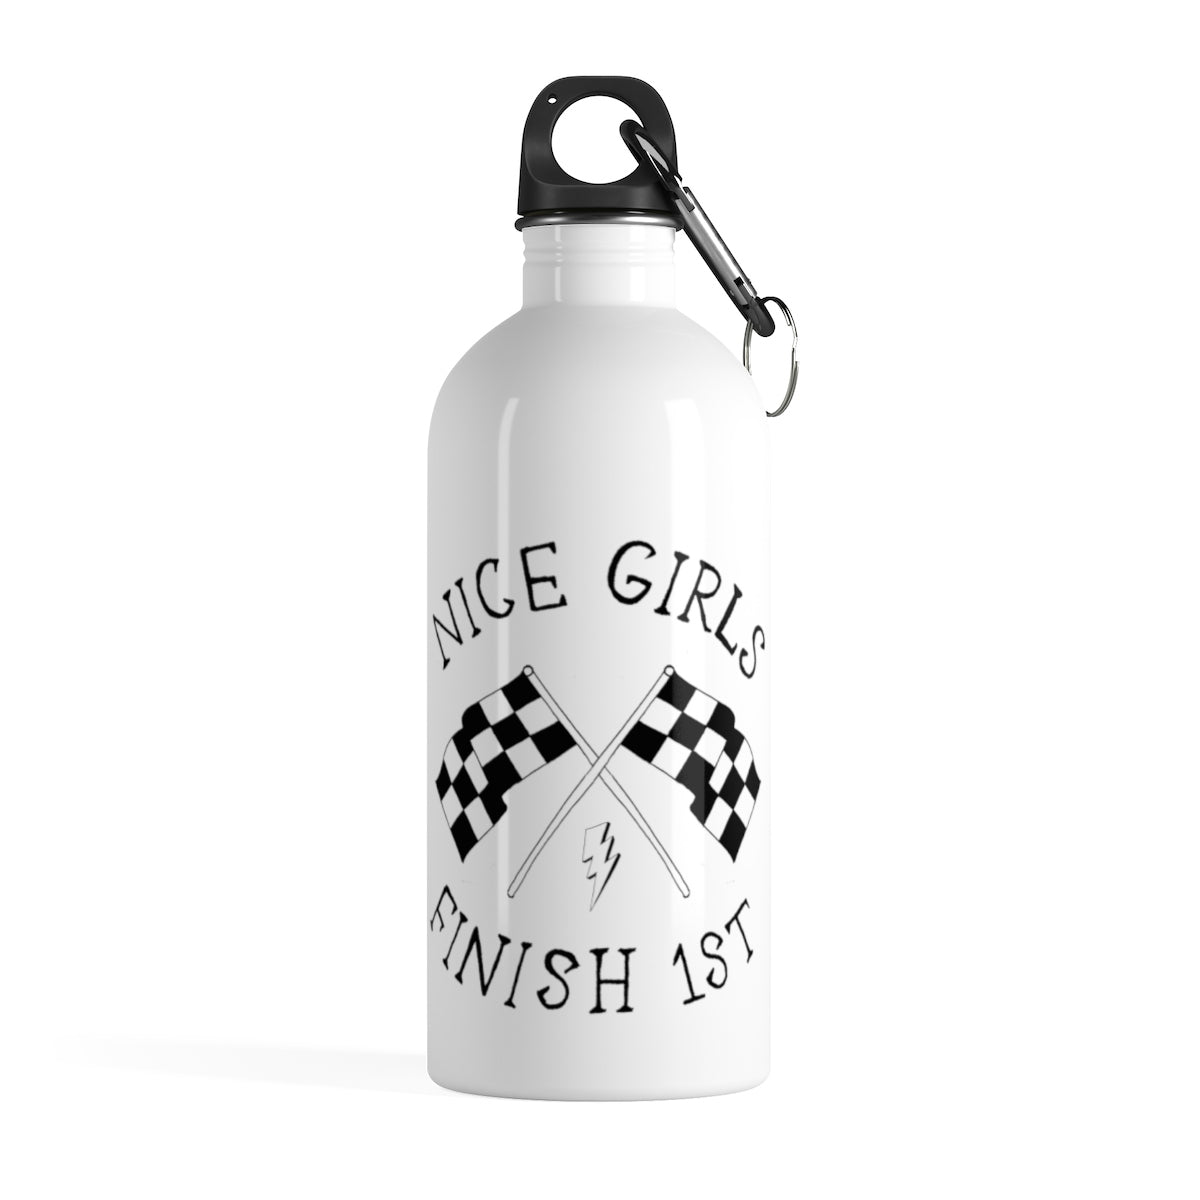 Nice Girls Stainless Steel Water Bottle